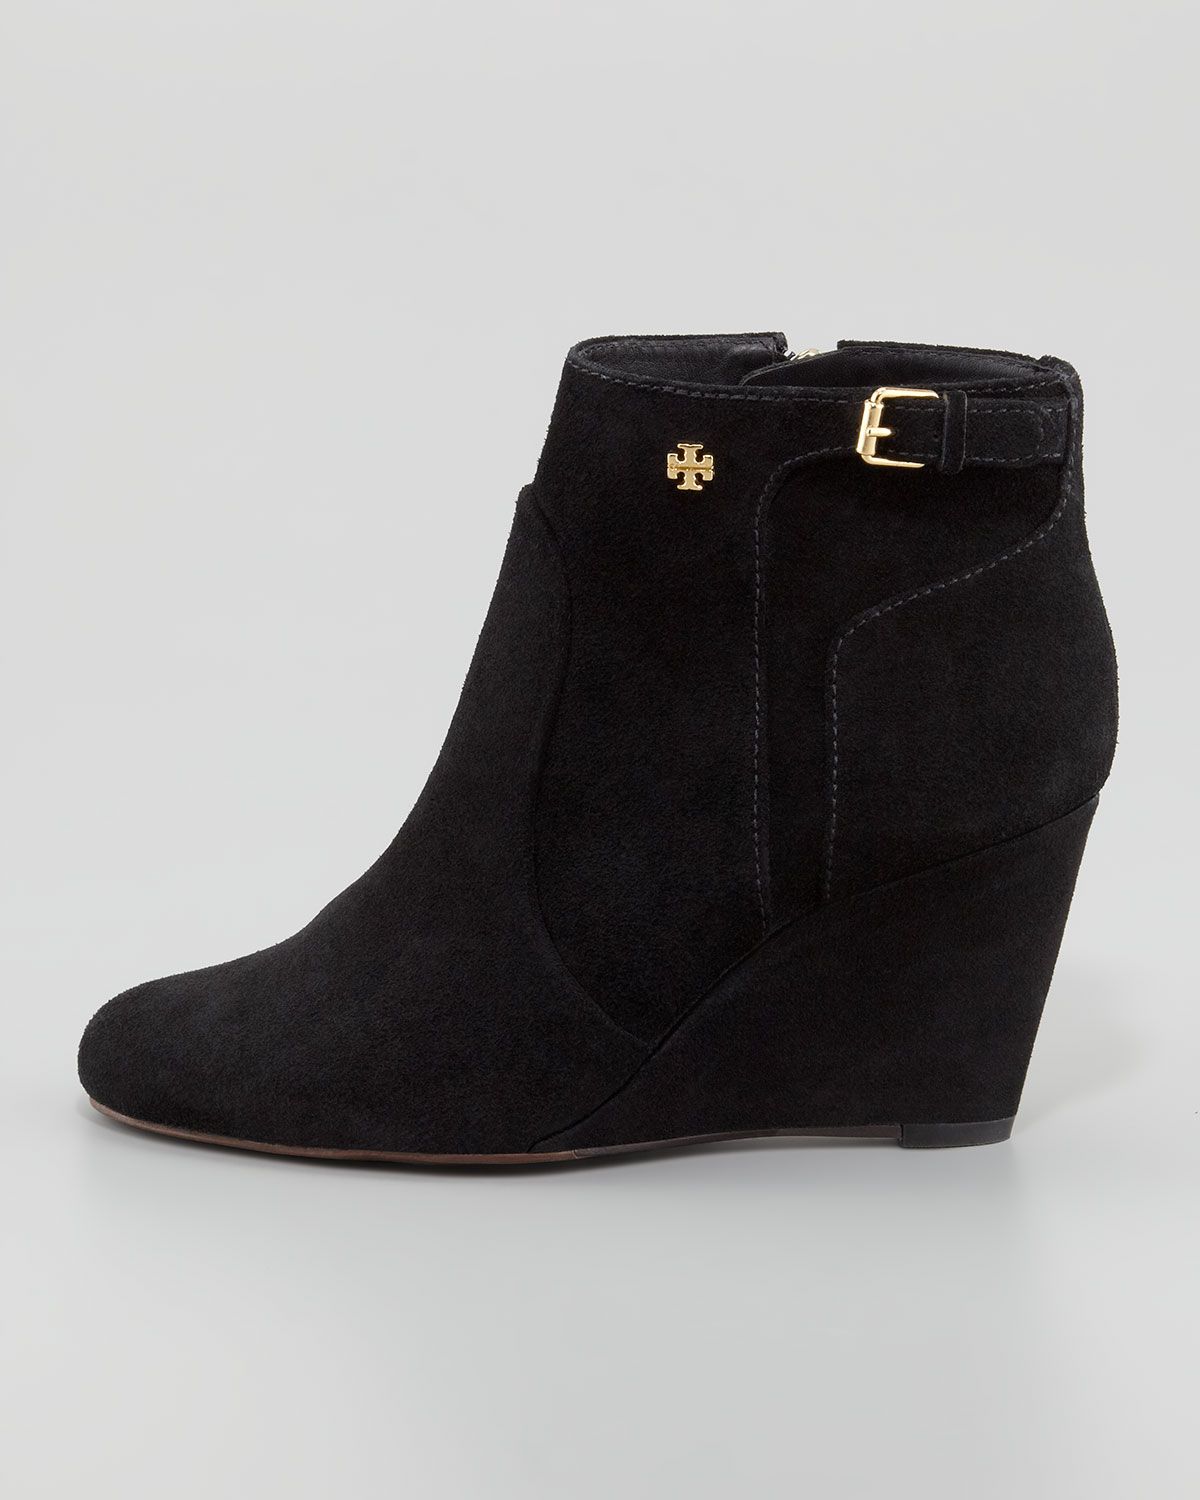 640d06e6962a0f Lyst - Tory Burch Milan Suede Wedge Bootie in Black